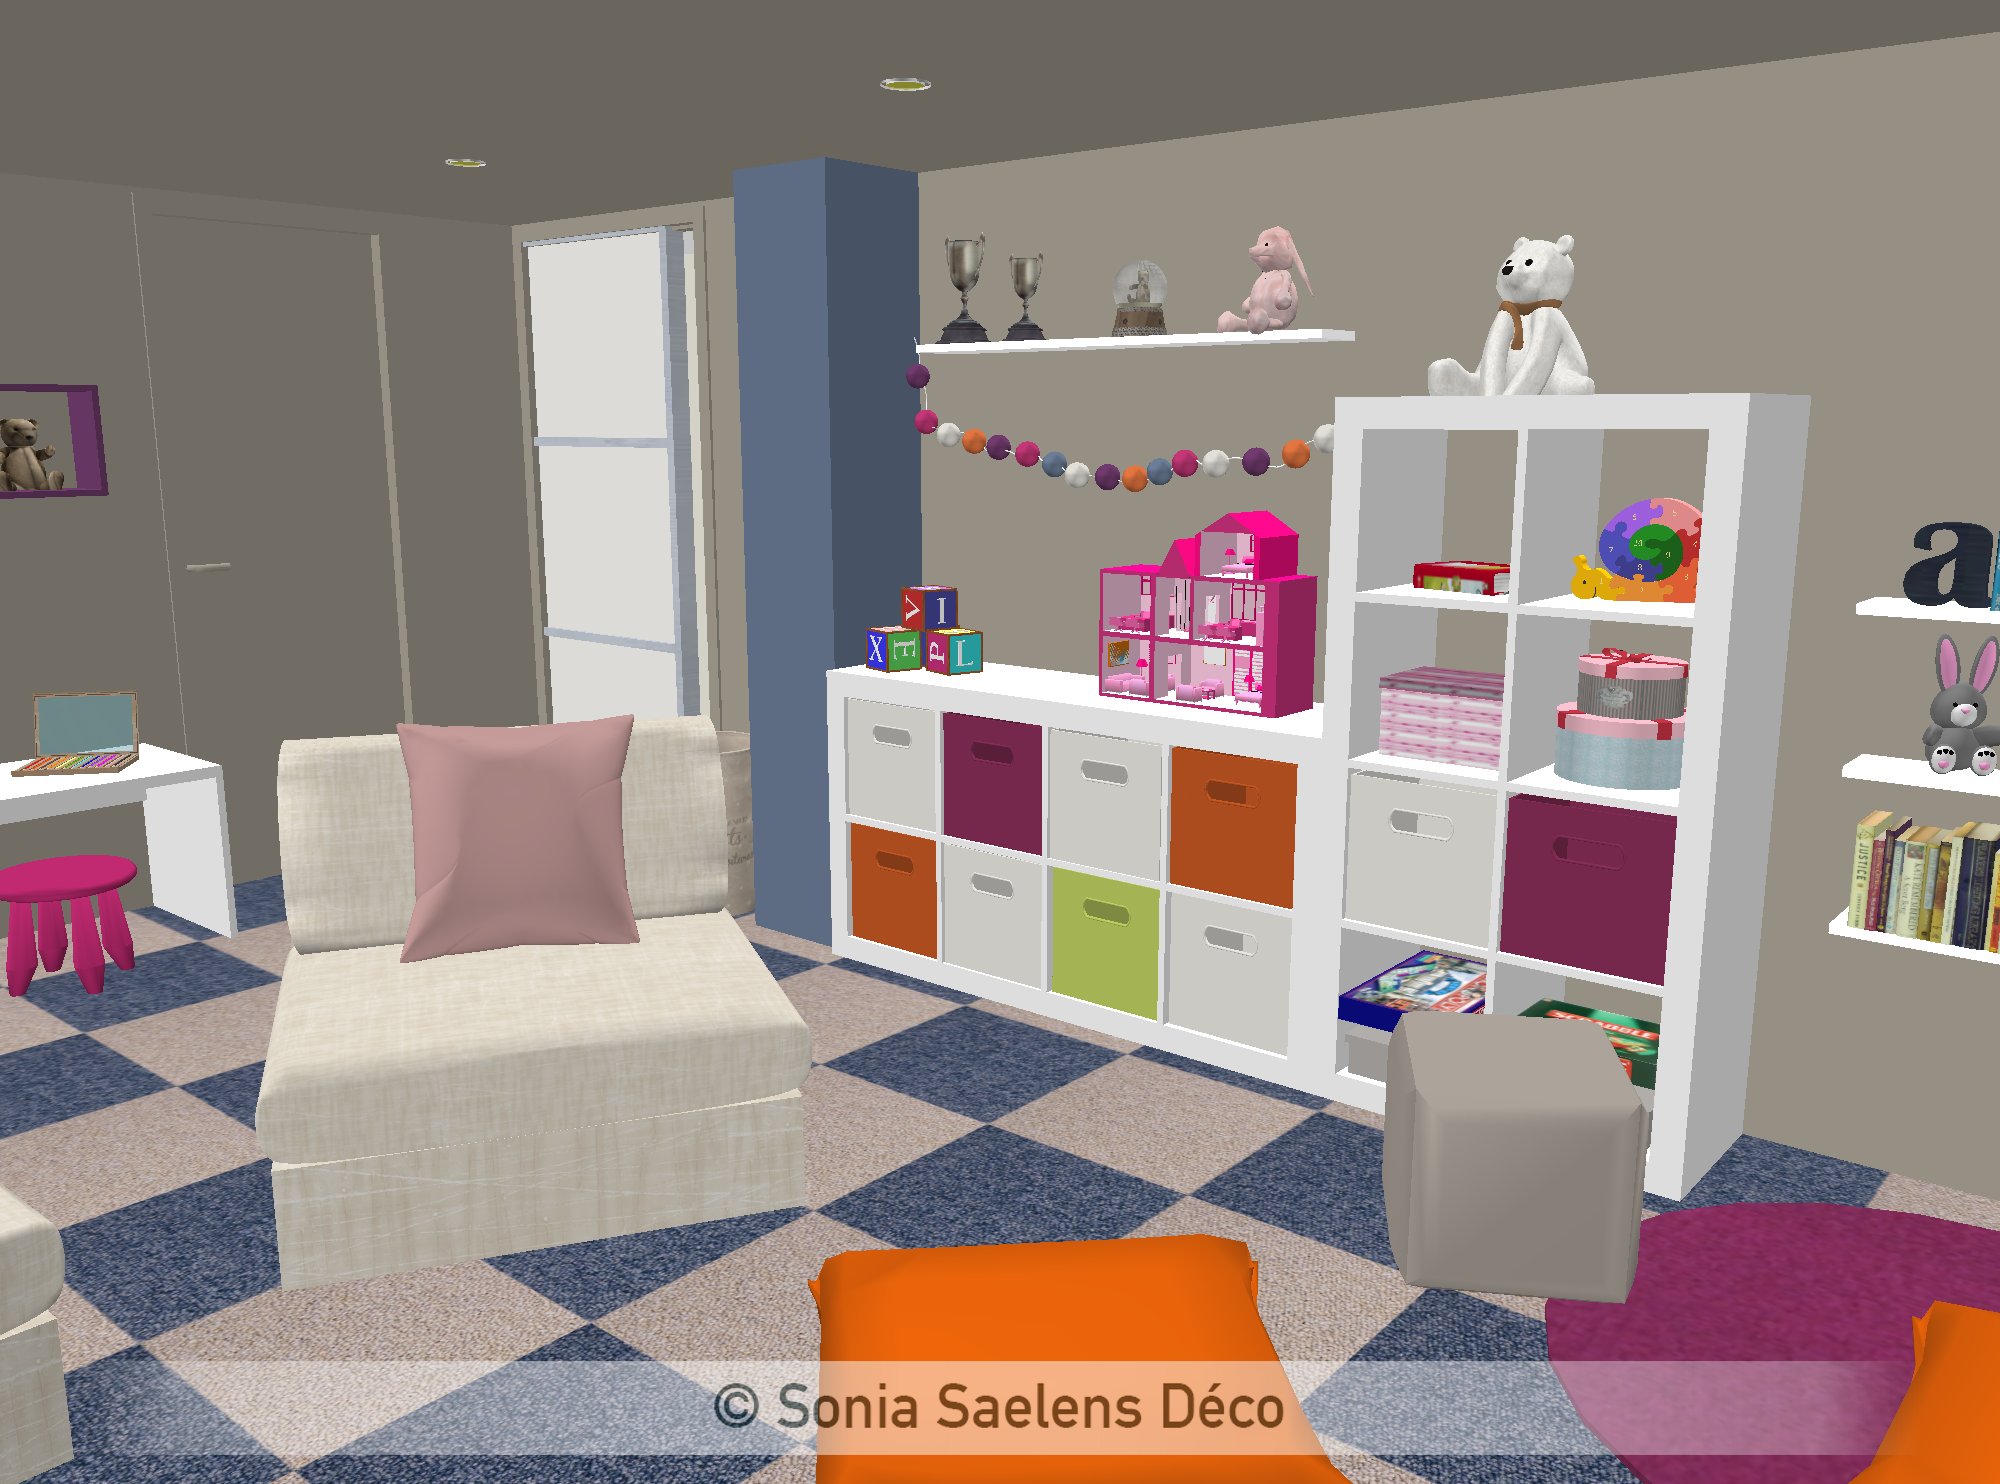 projet client un sous sol am nag en salle de jeux. Black Bedroom Furniture Sets. Home Design Ideas